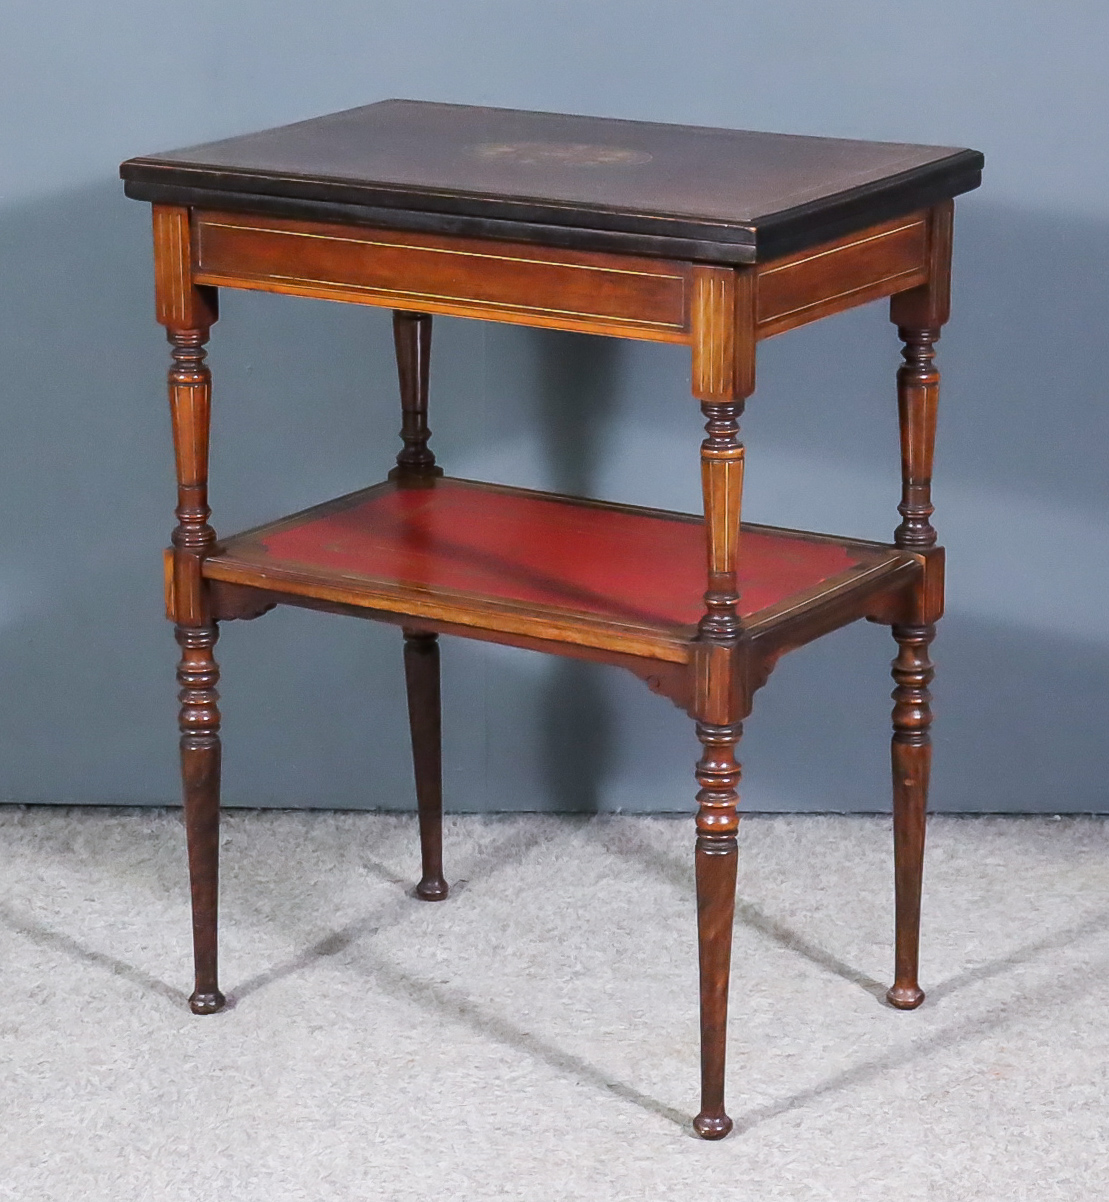 A Late Victorian Inlaid Rosewood Rectangular Card Table, with red leather and gilt folding top, on